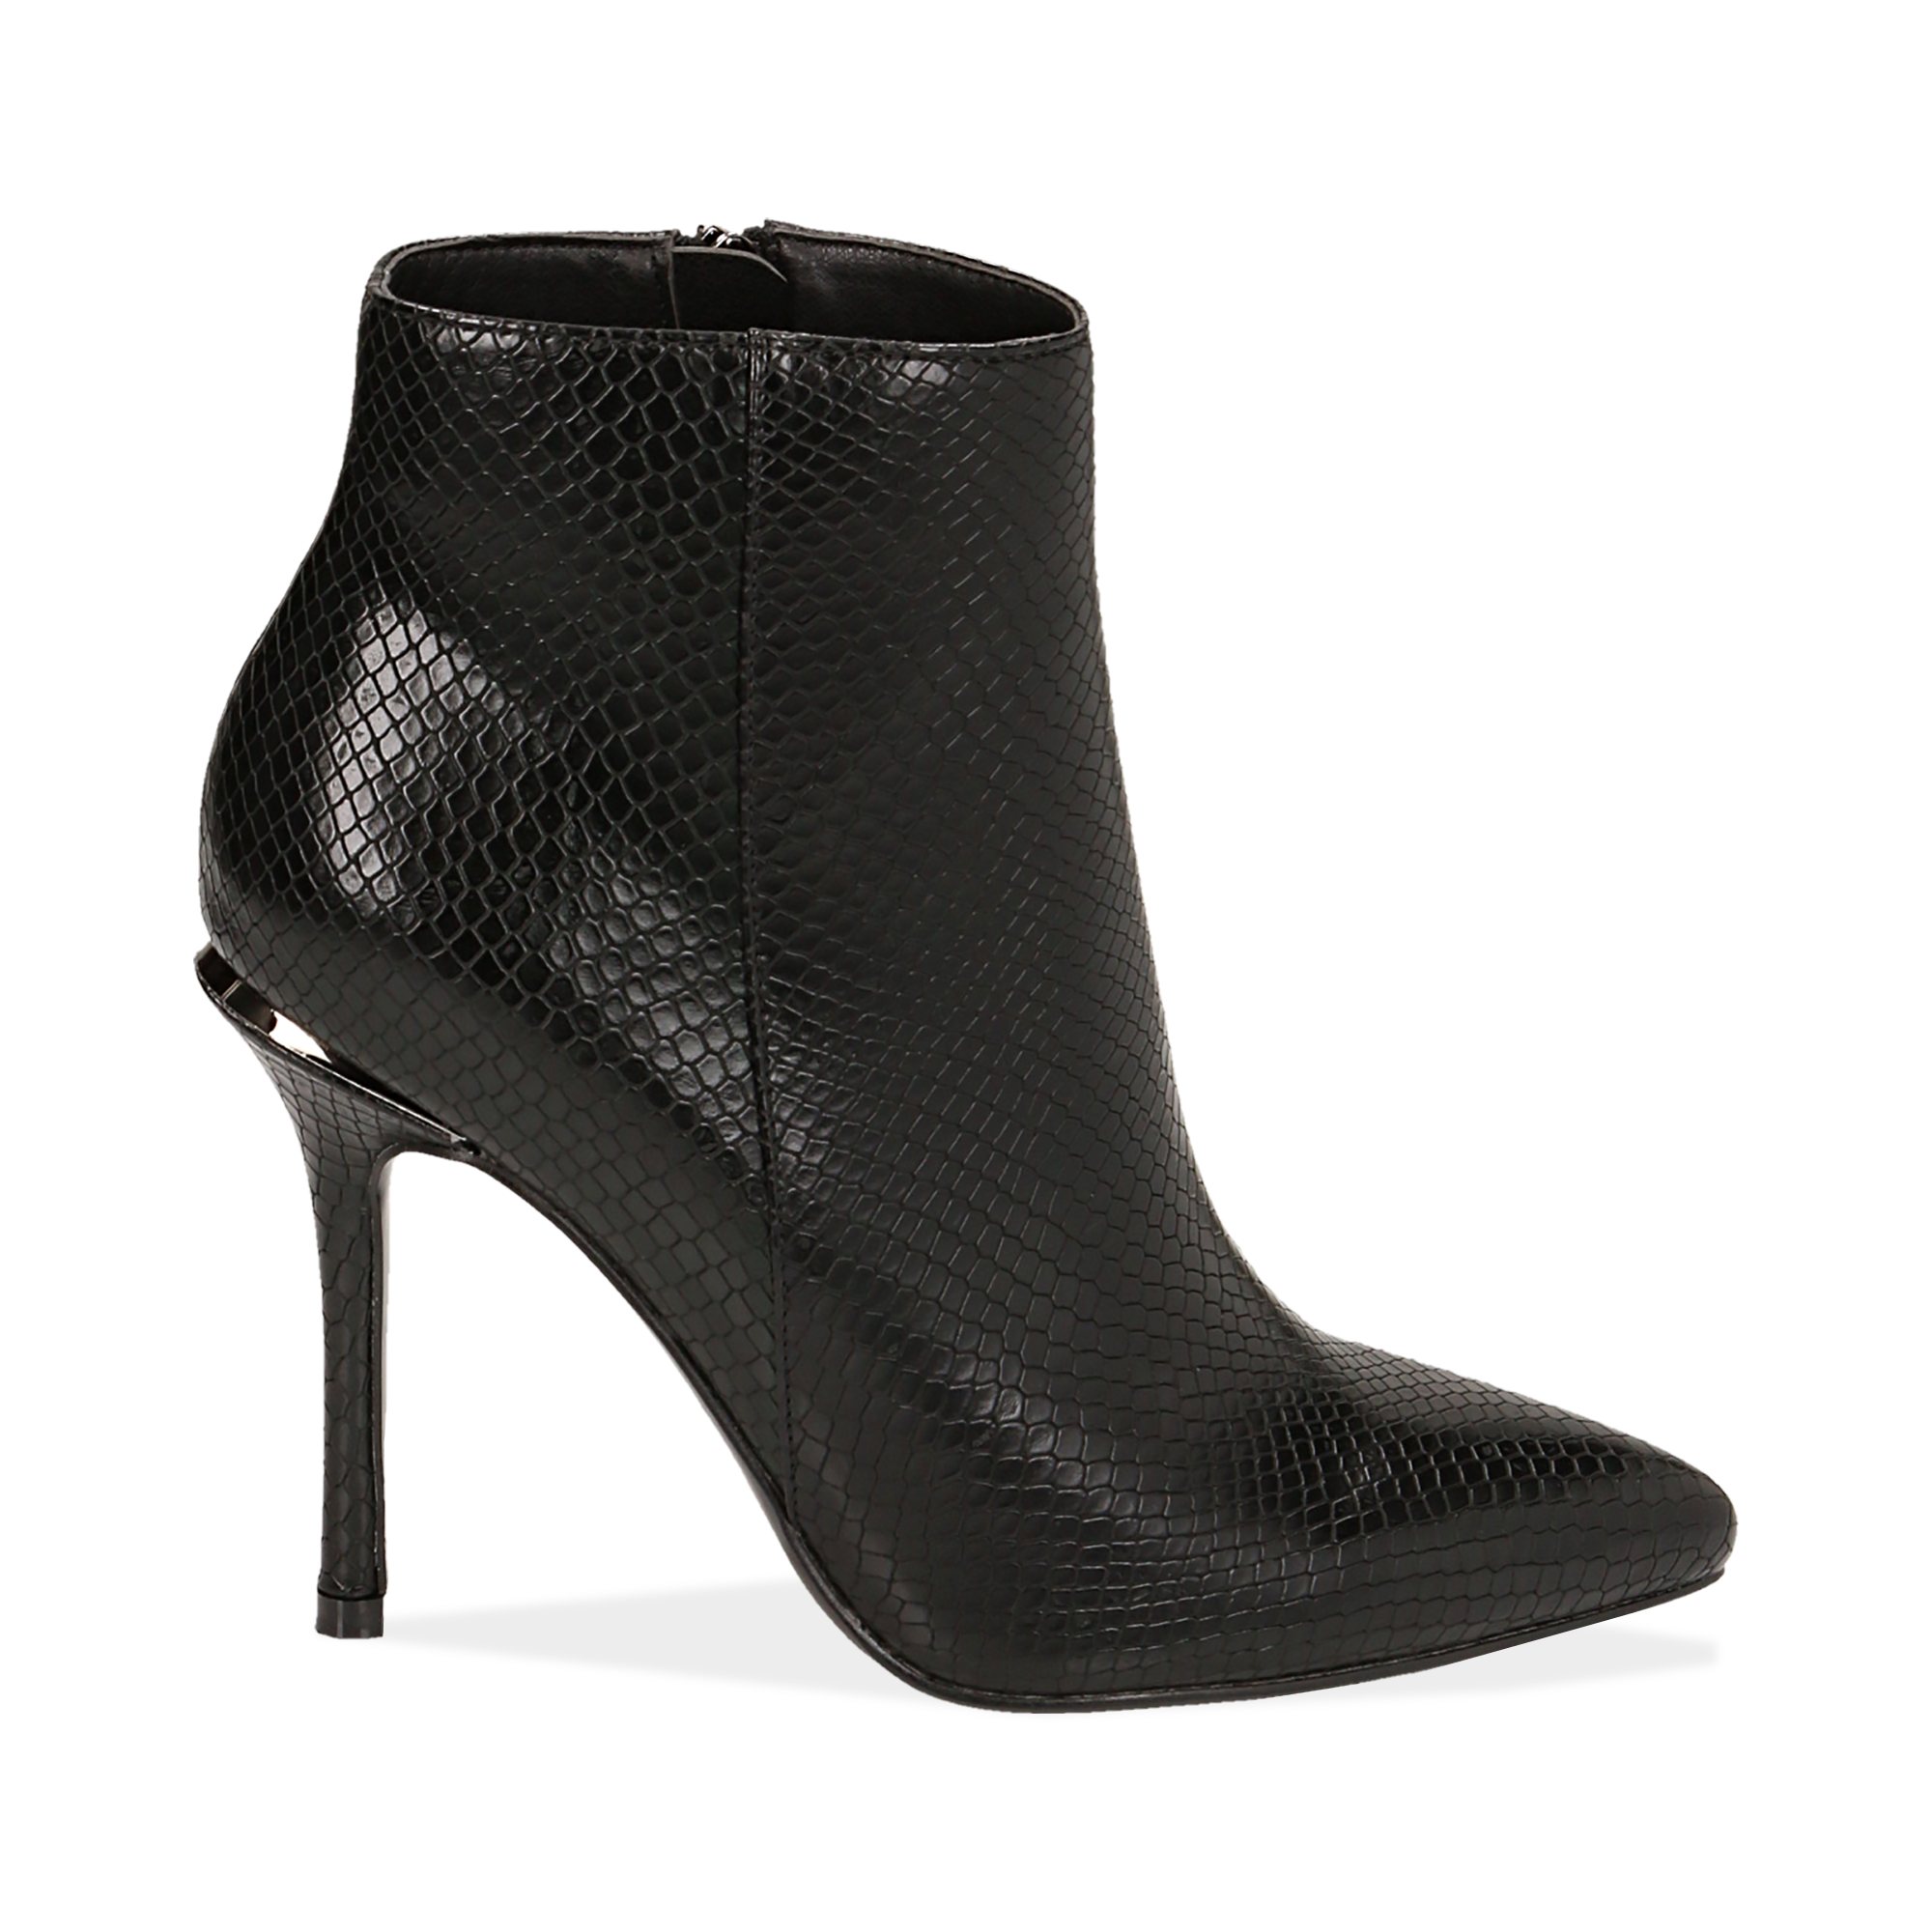 Ankle boots neri effetto snake, tacco 11 cm